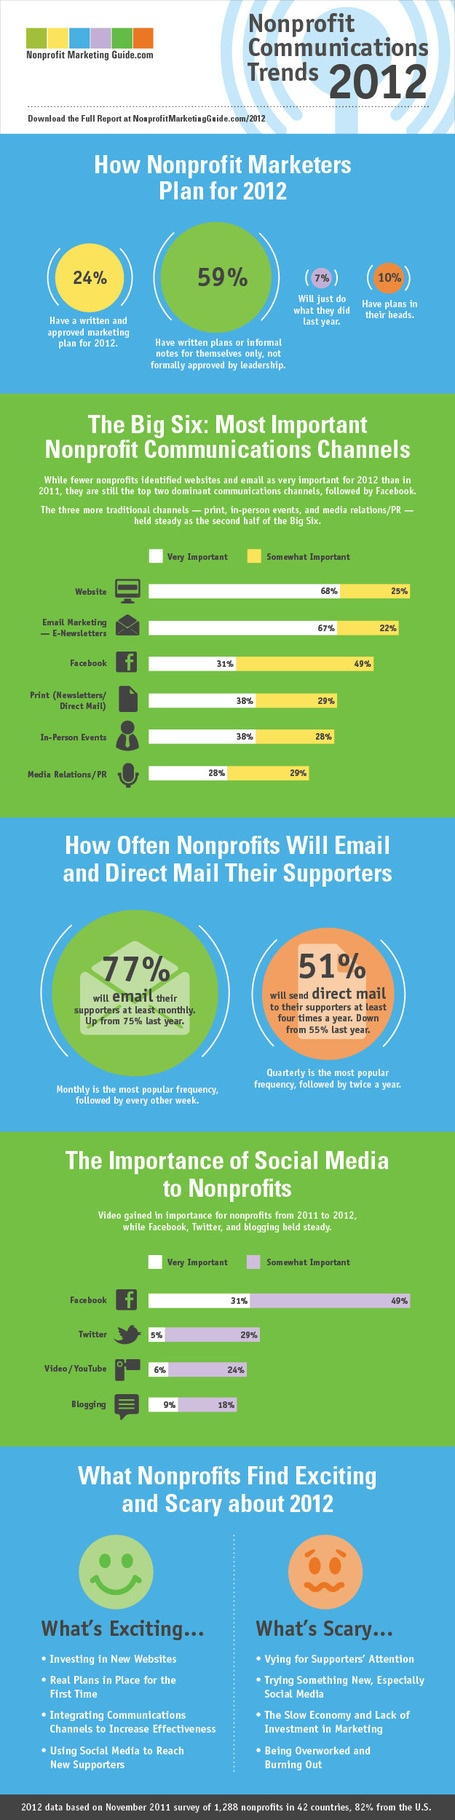 Nonprofit Communication Trends 2012 (Infographic) | Fundraising in a Modern World